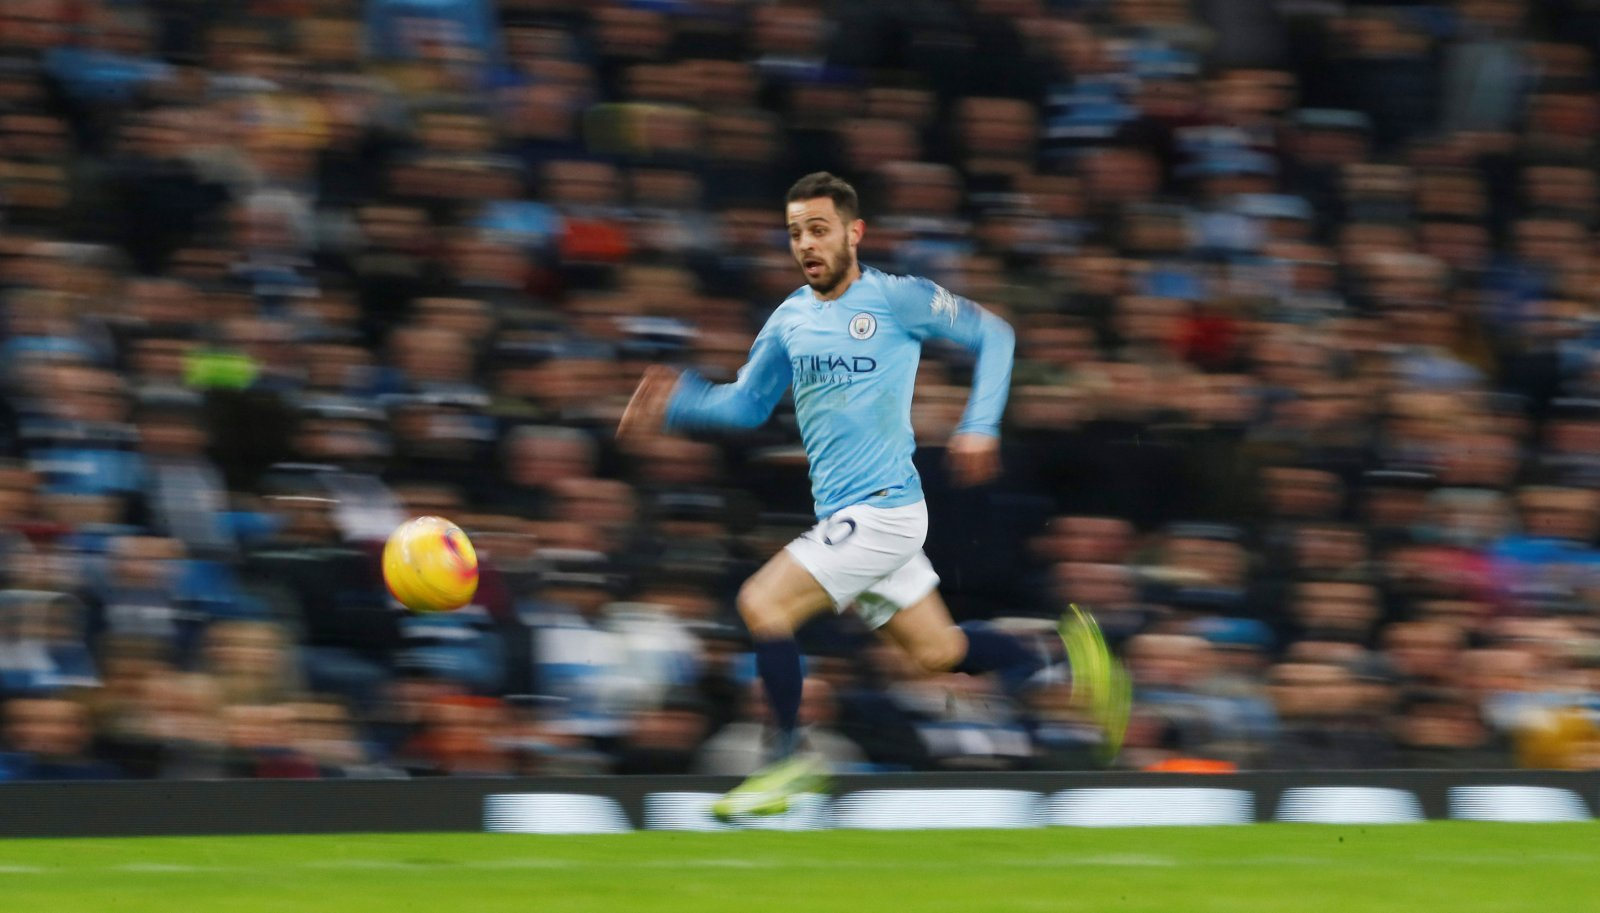 Manchester City fans on Twitter infatuated with sublime Bernardo Silva